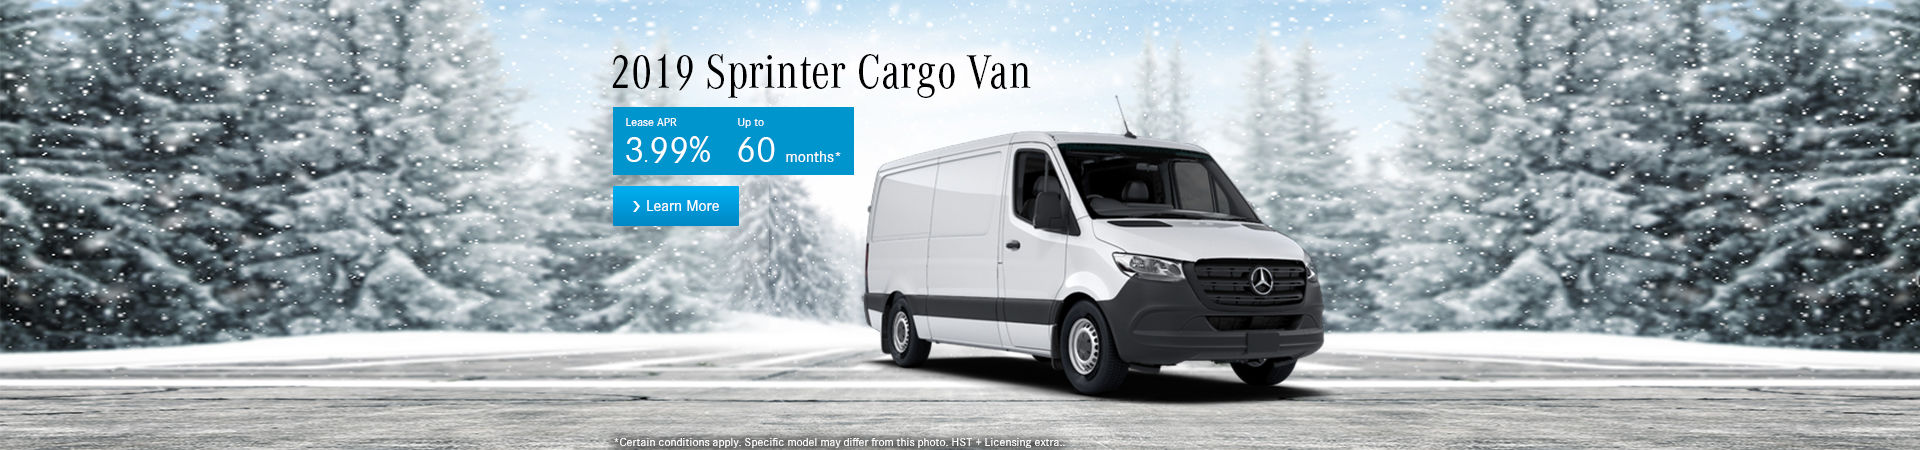 The 2019 Sprinter Cargo Van-desktop